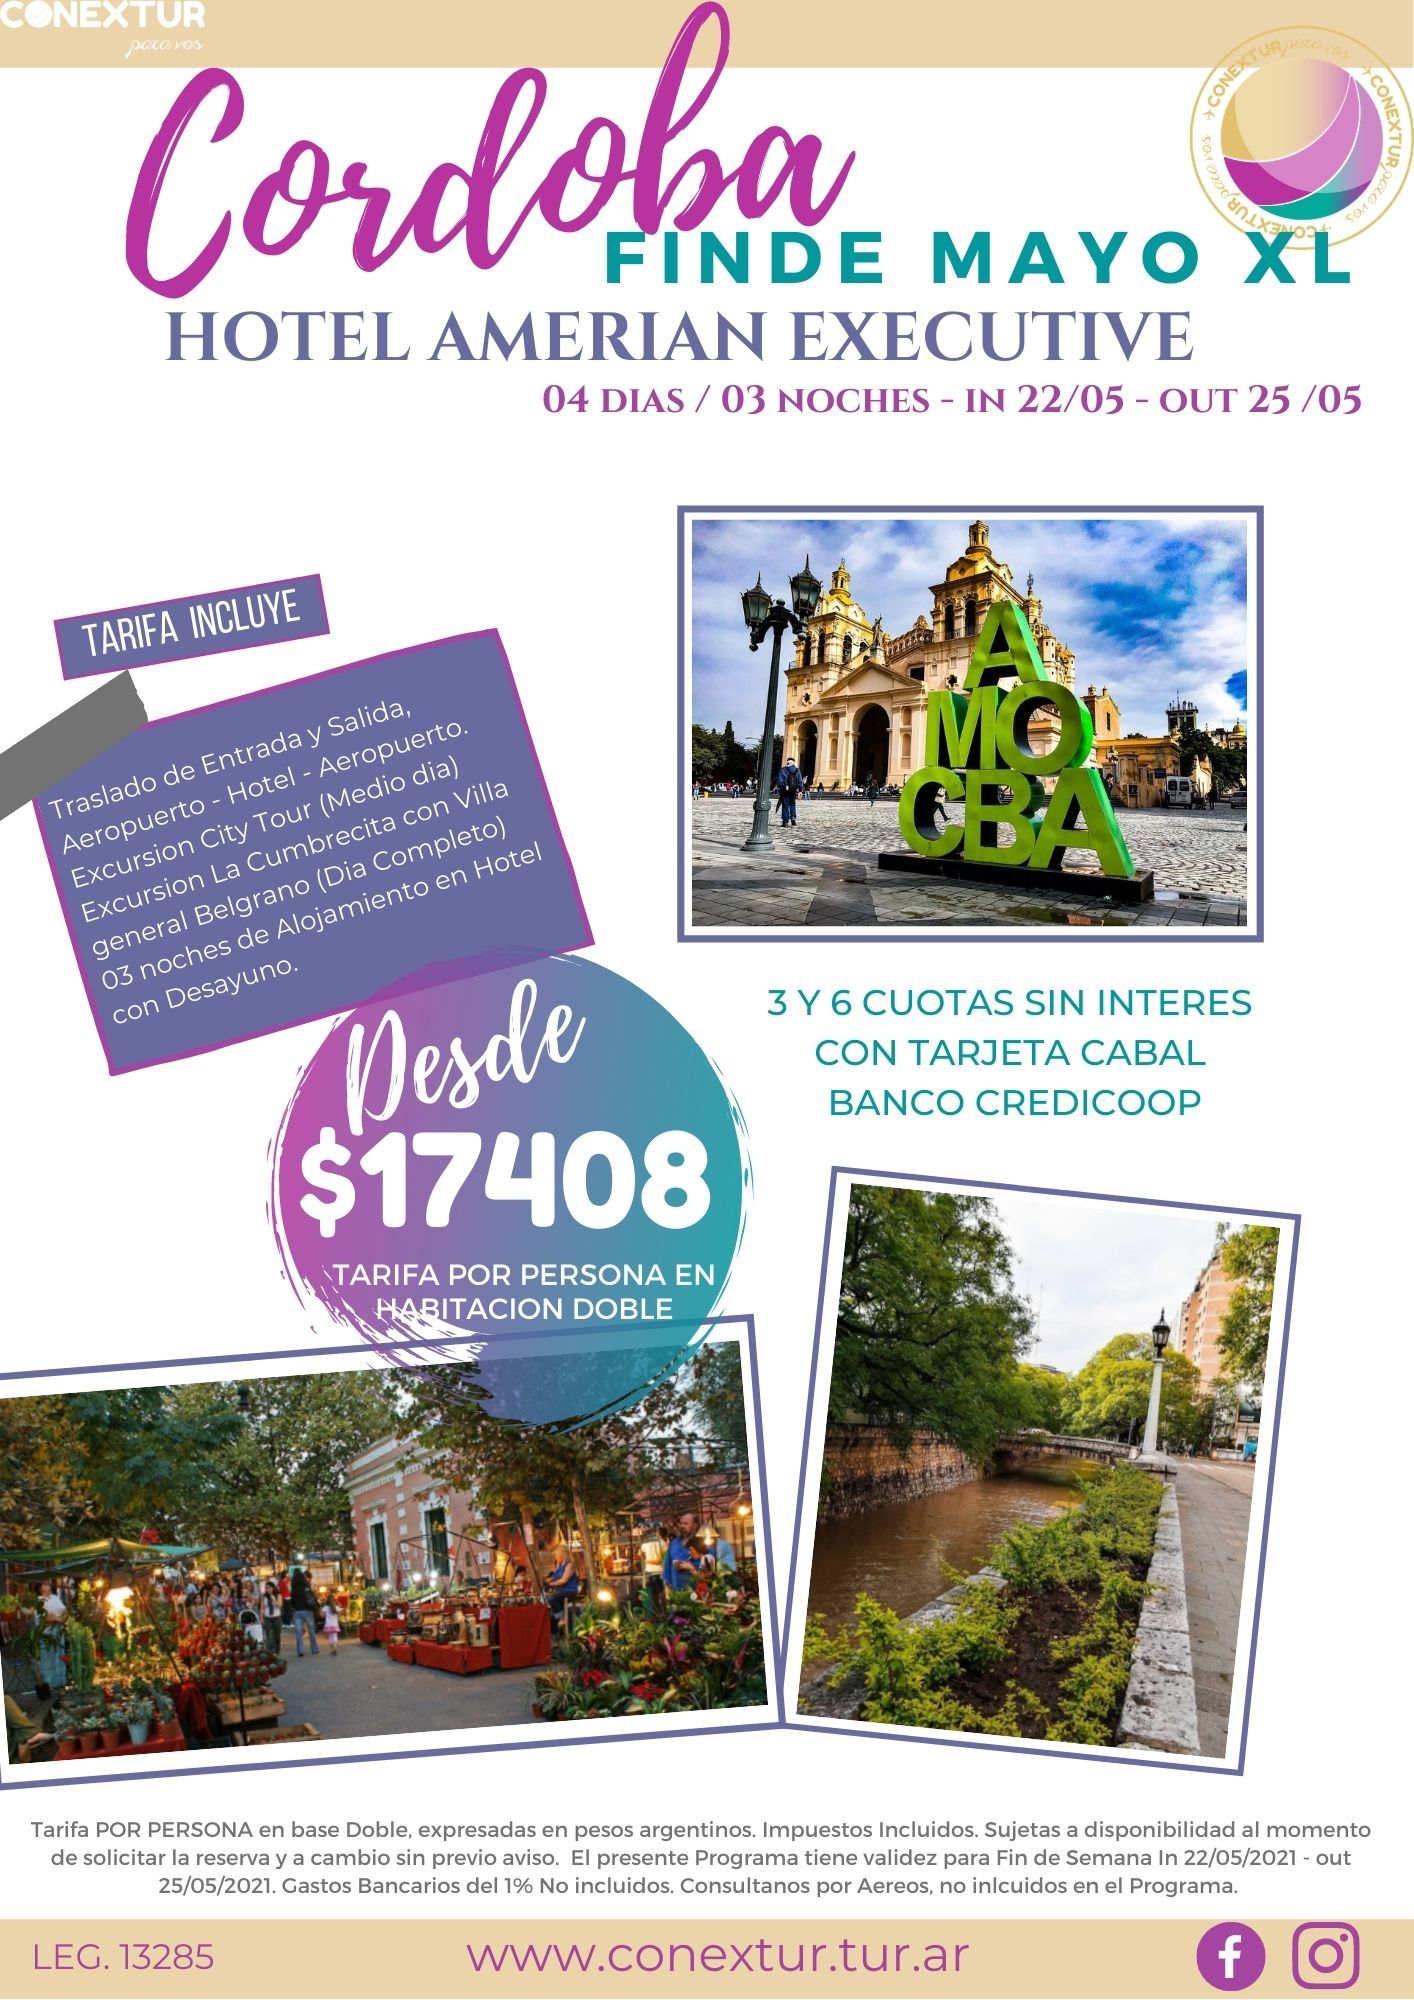 Hotel Amerian Executive - Cordoba Capital - Promo Mayo